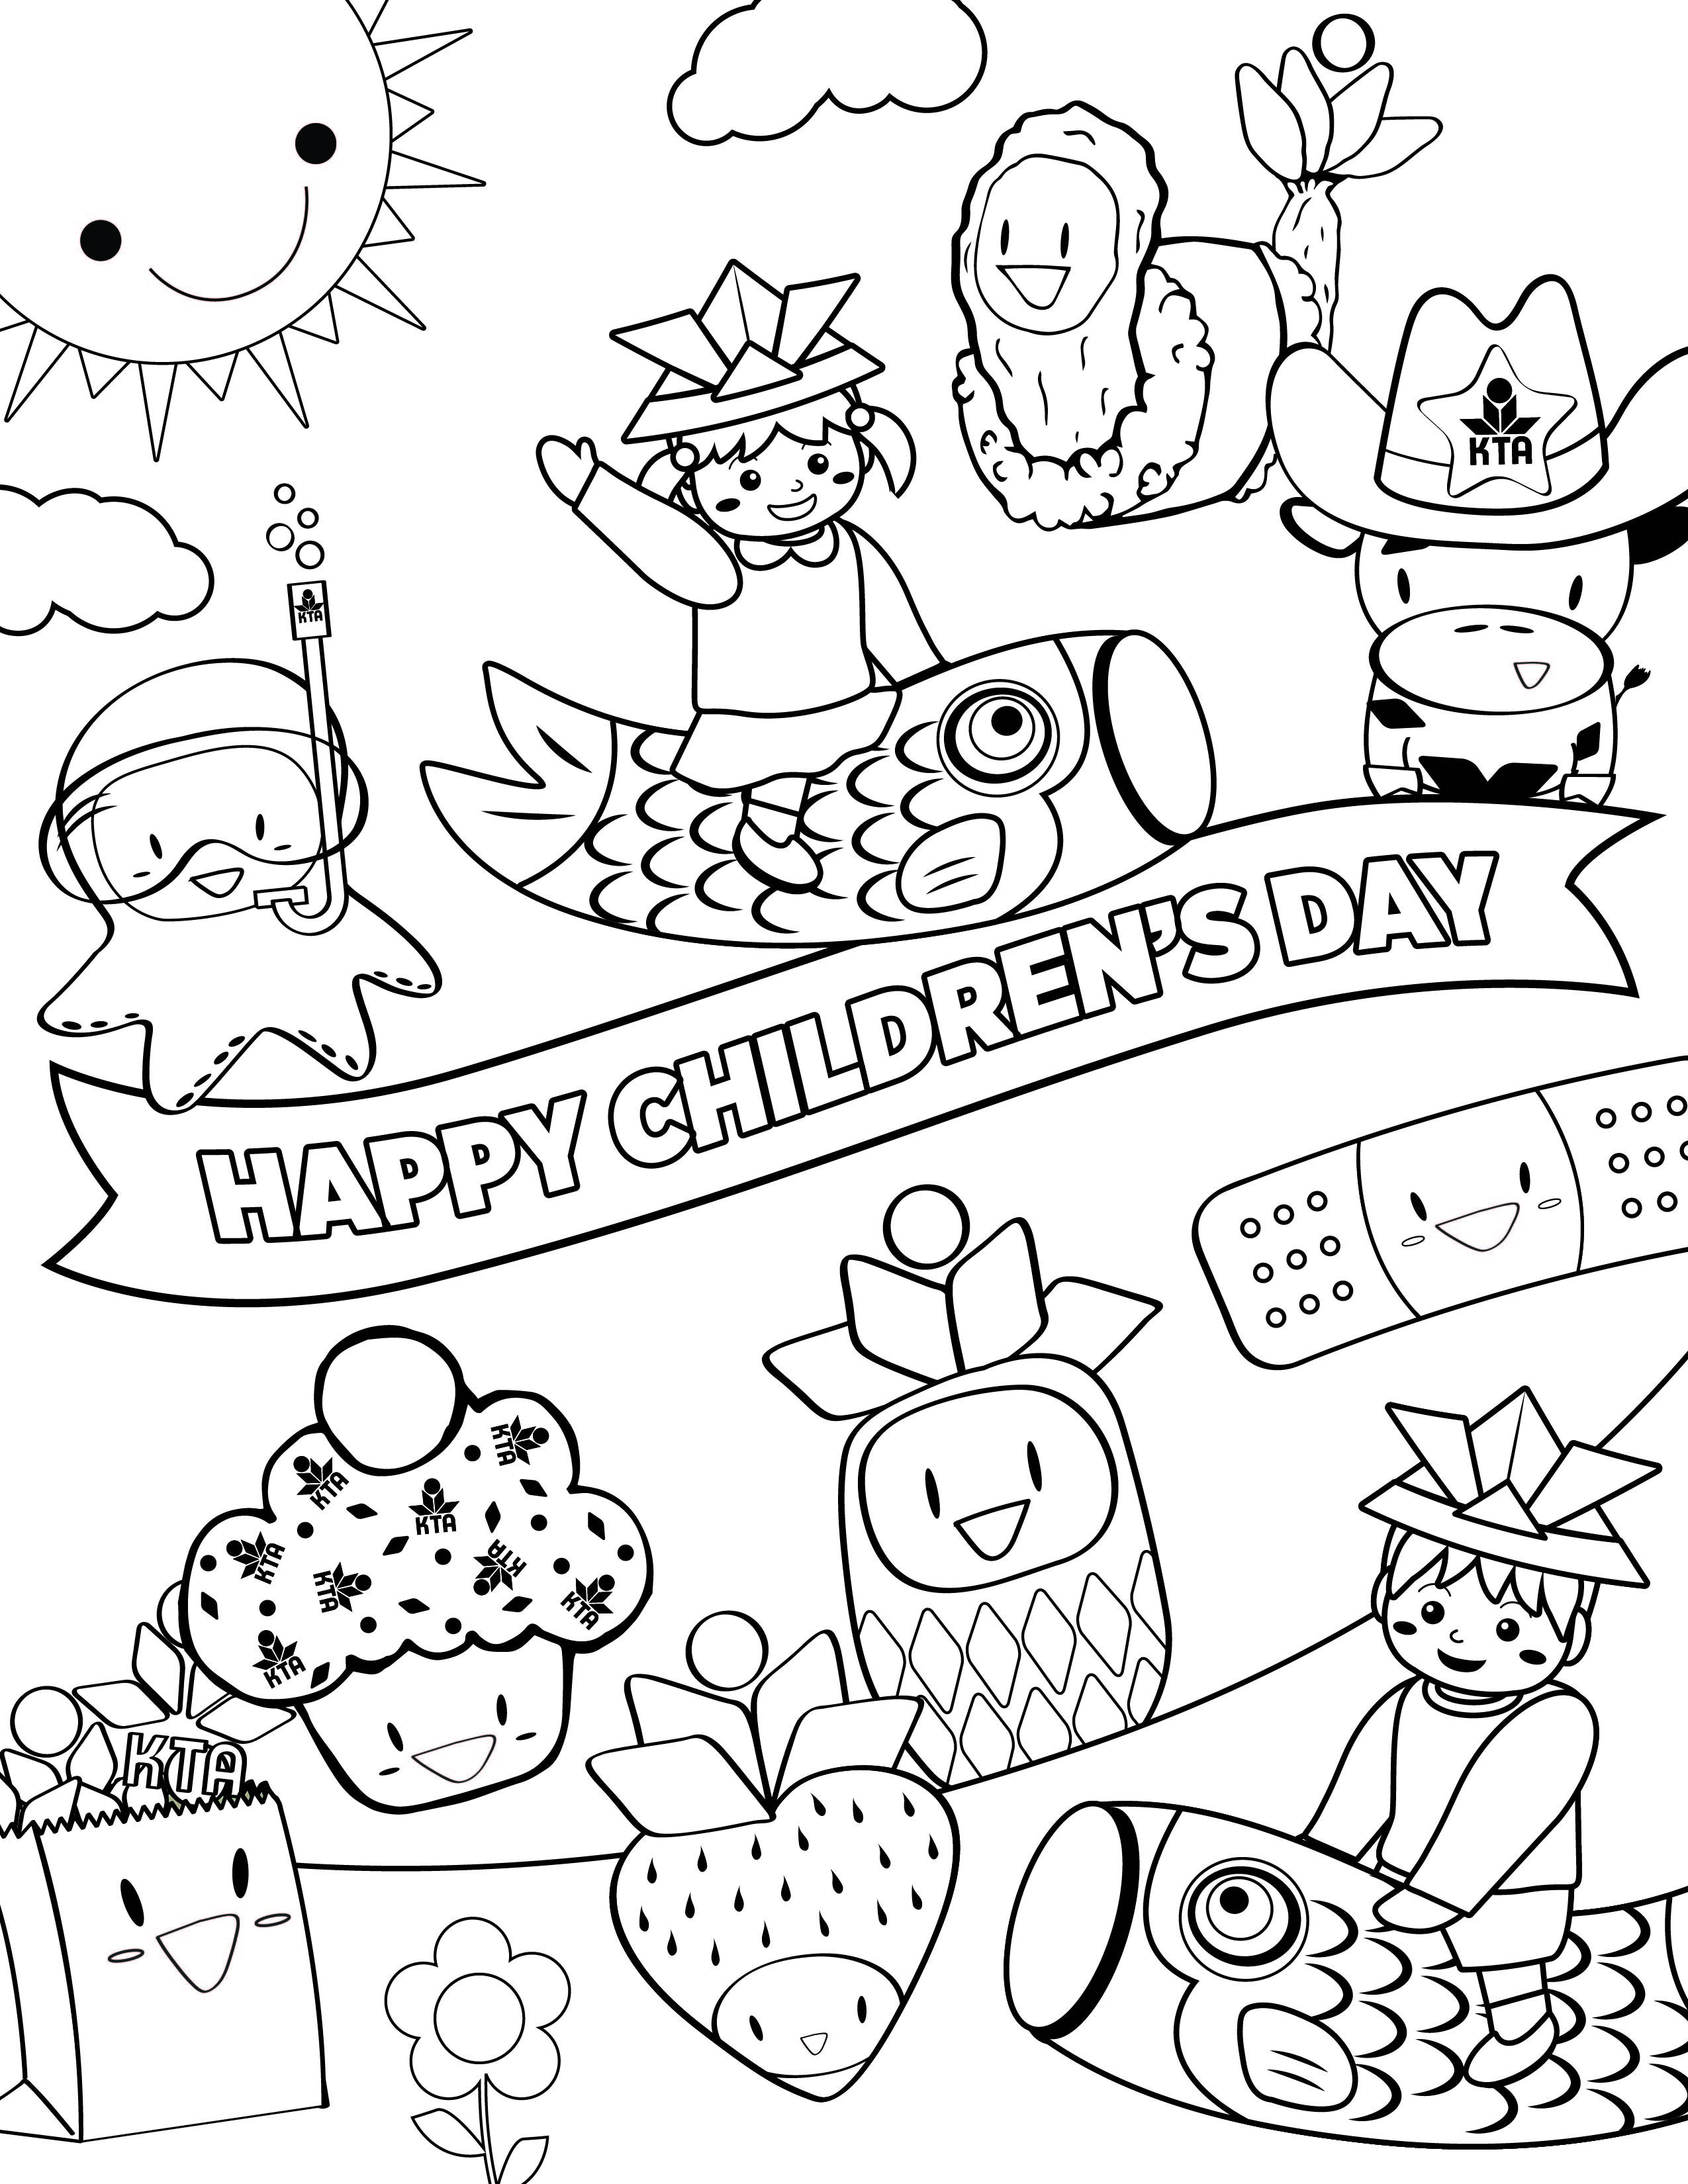 Kta Mascot Children S Day Coloring Page Boys Day Child Day Coloring Pages